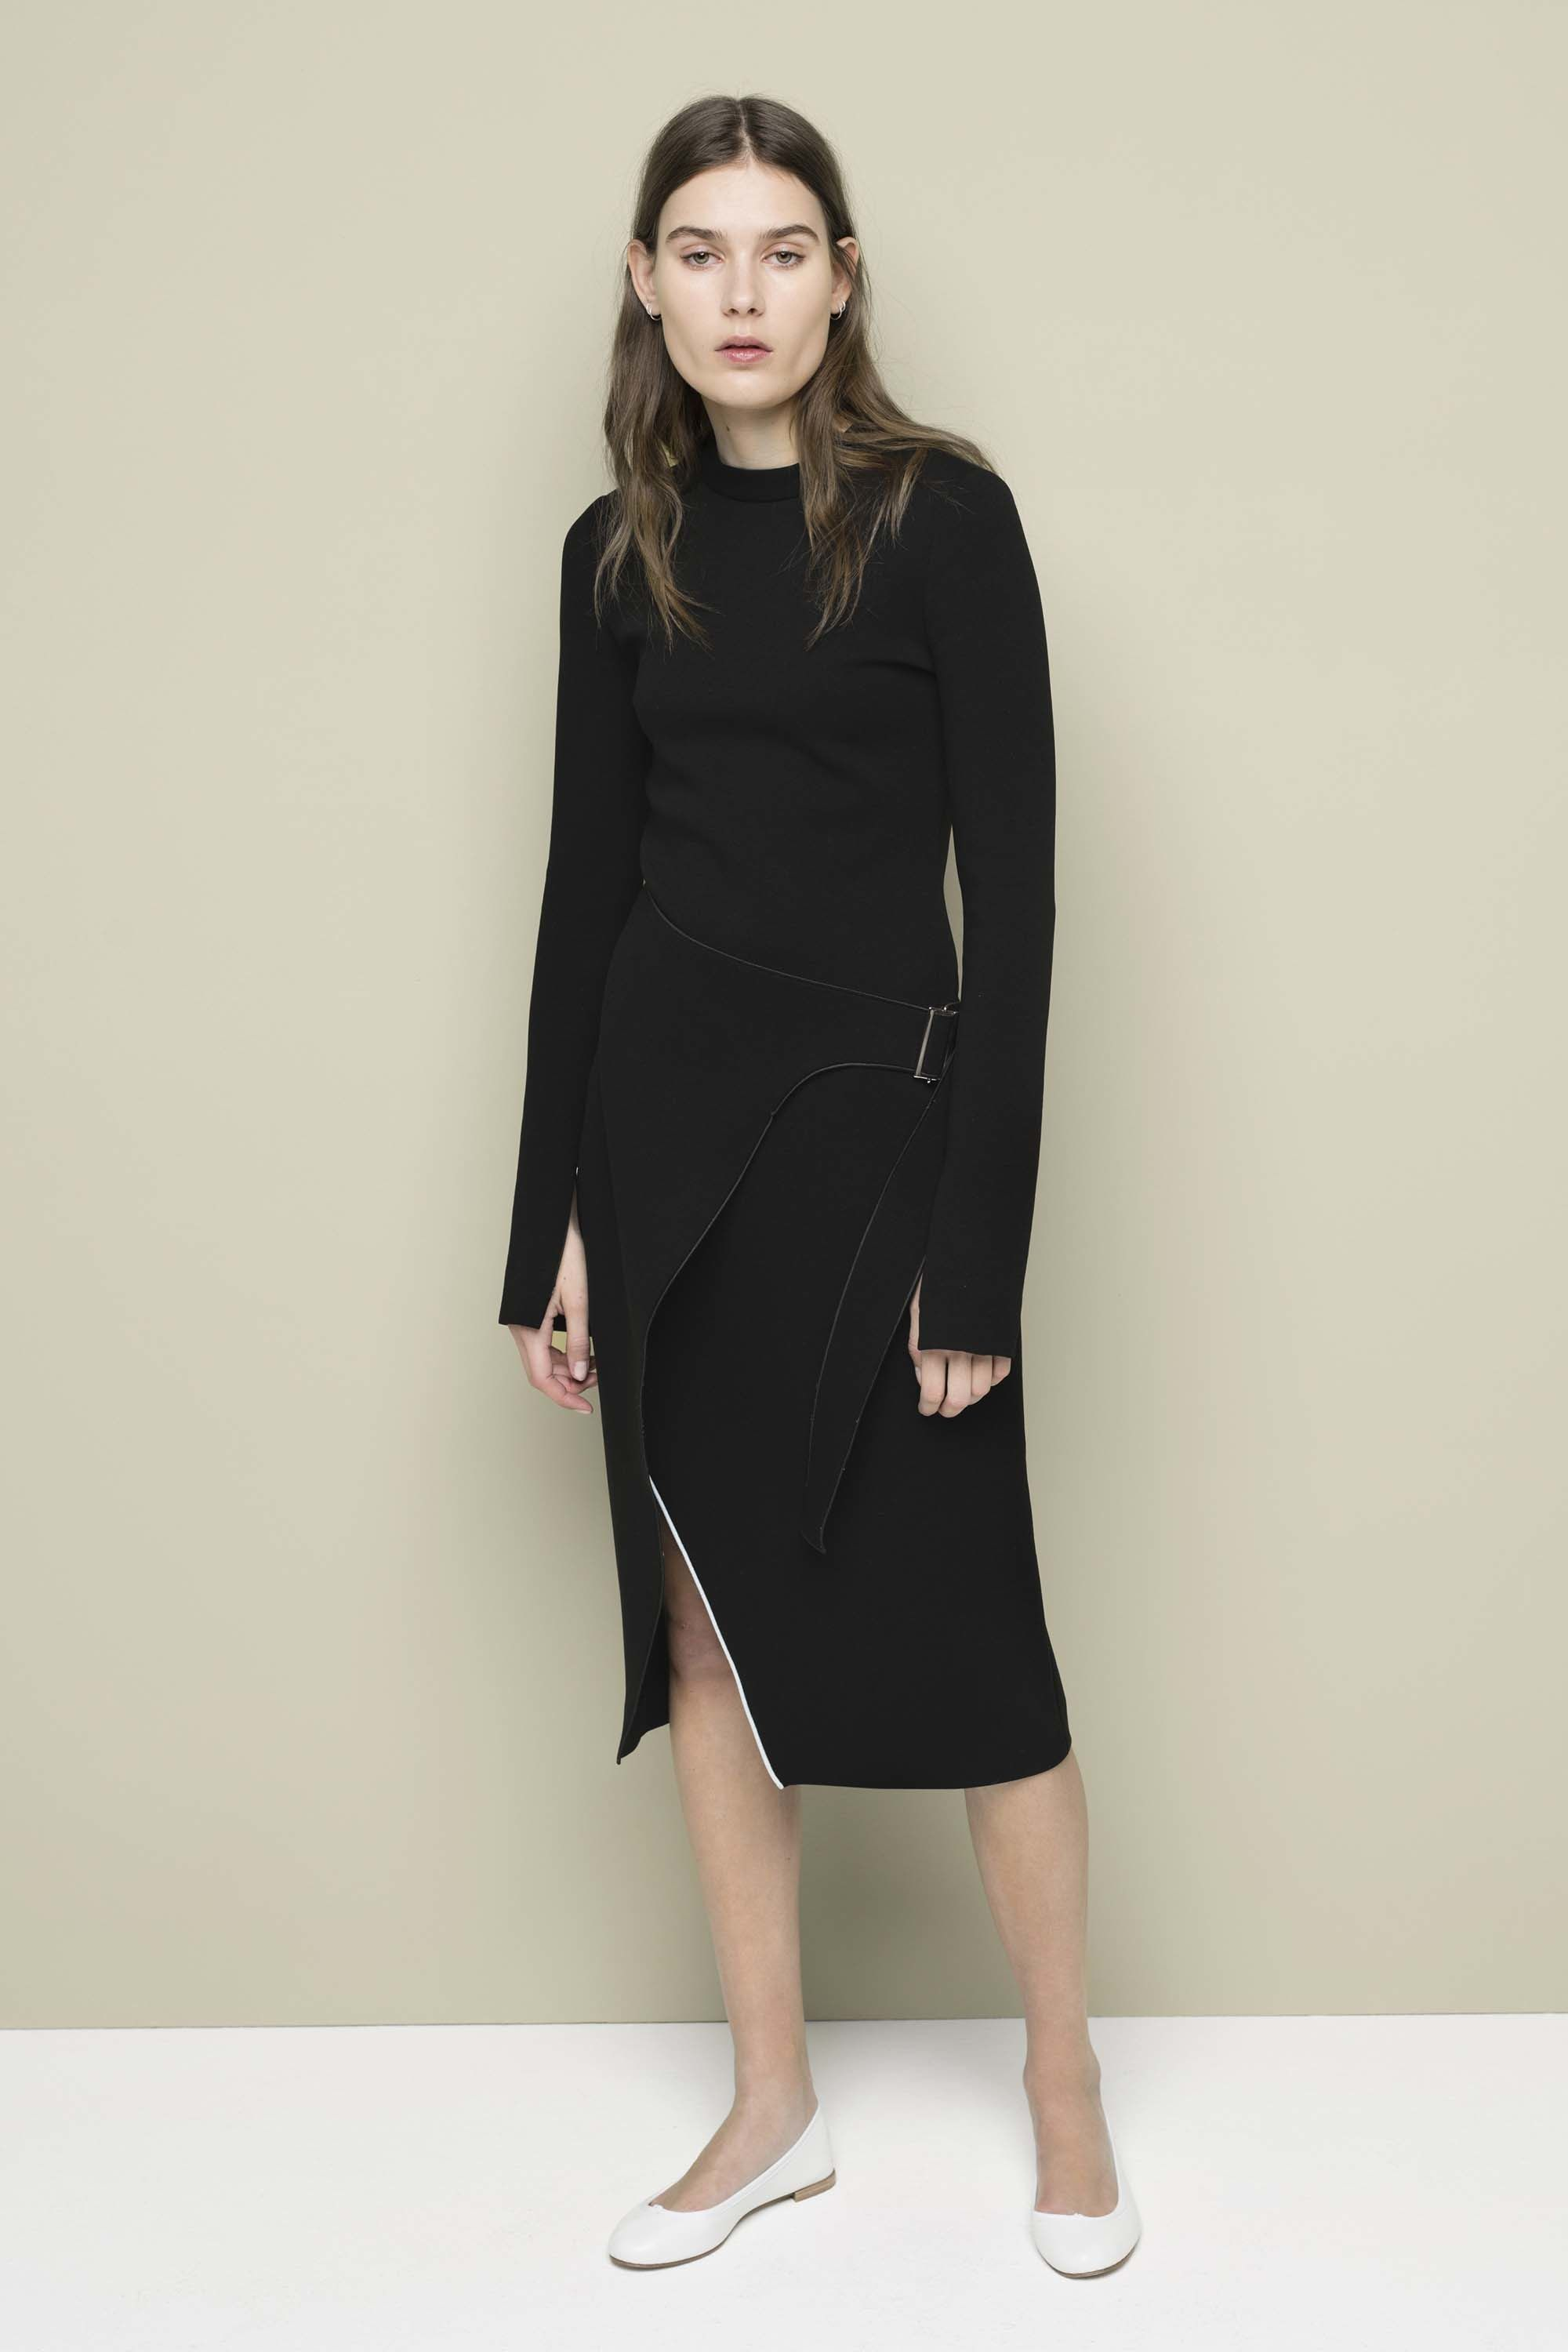 Aquilano.Rimondi Pre-Fall 2016 Collection Photos - Vogue